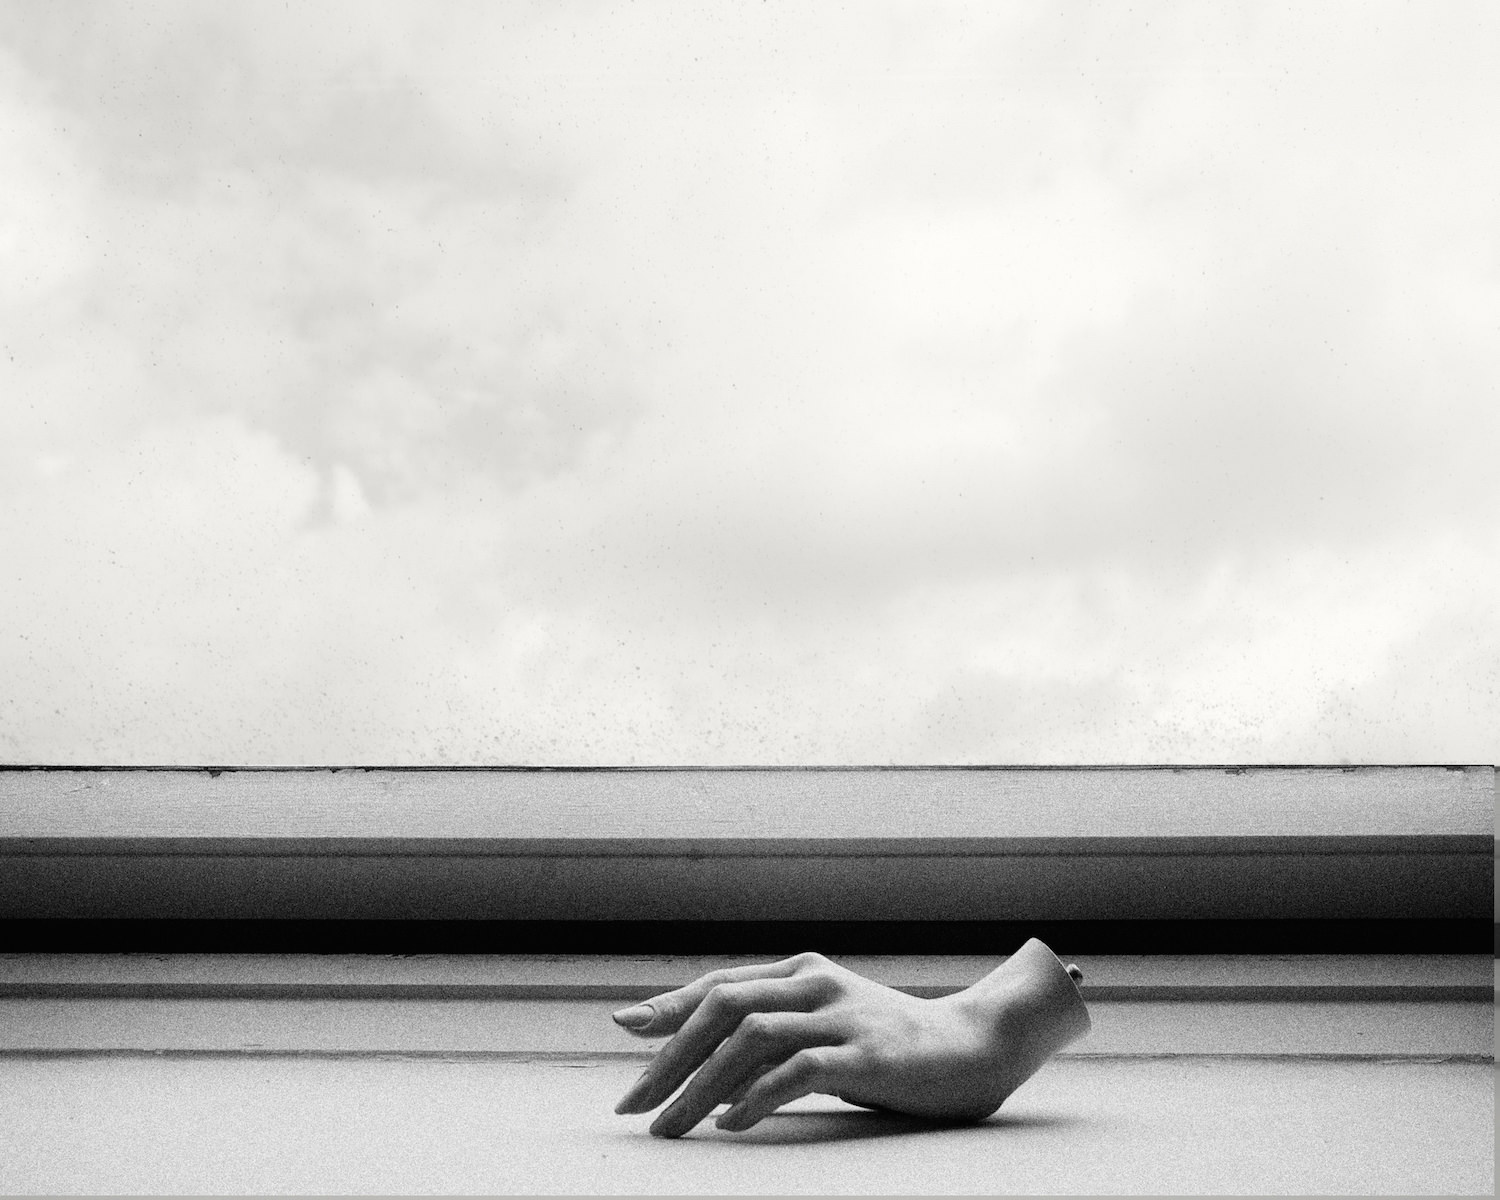 The Hand by Philip Sweeck